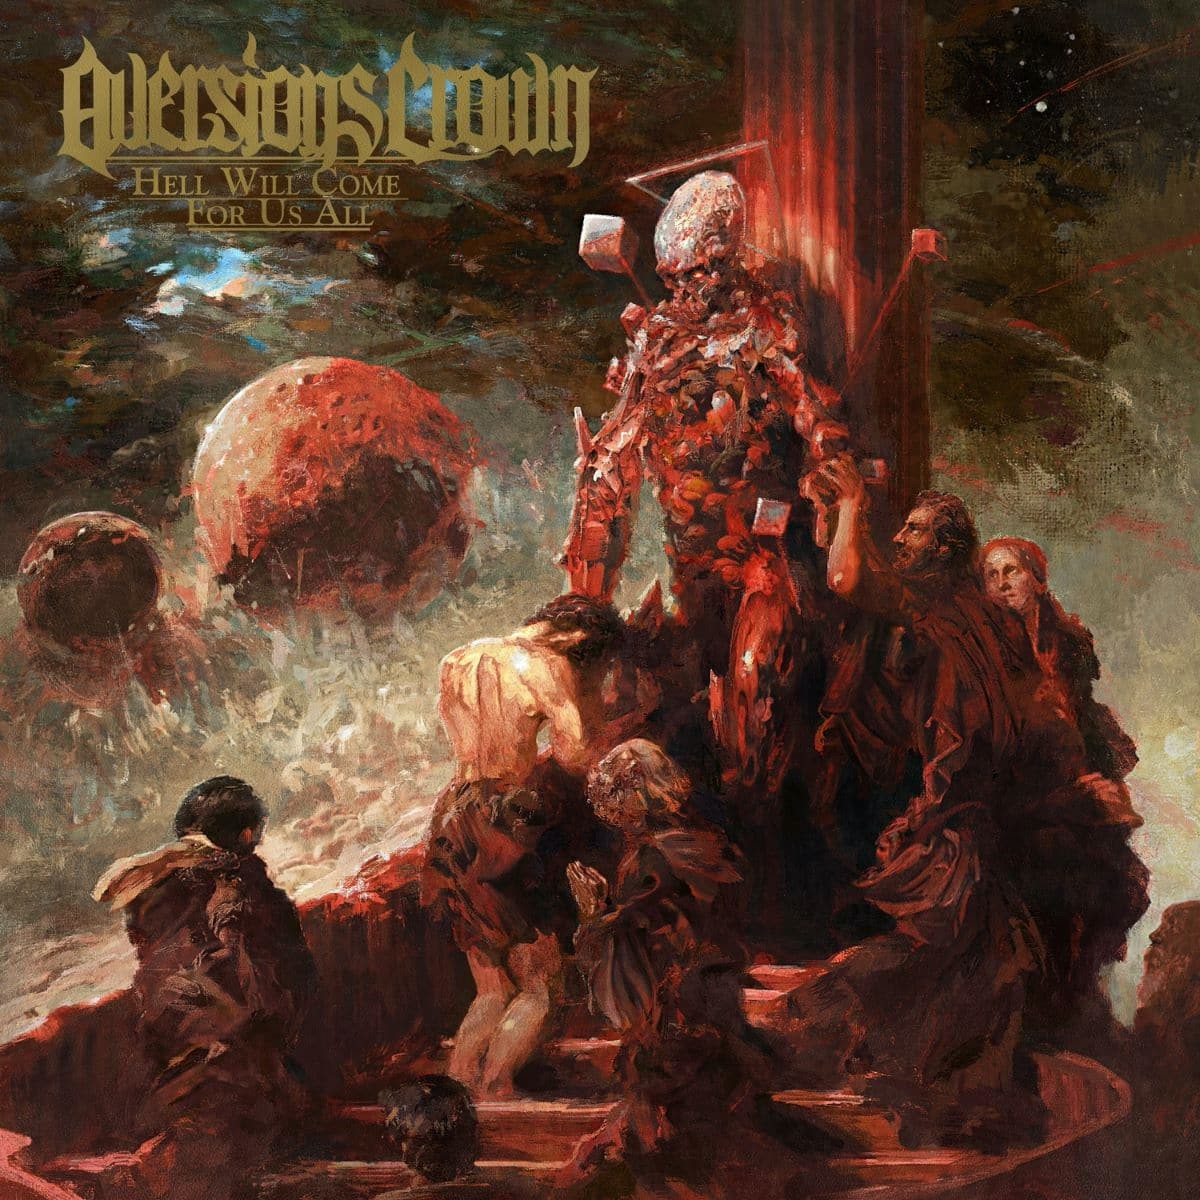 Aversions Crown Hell Will Come For Us All